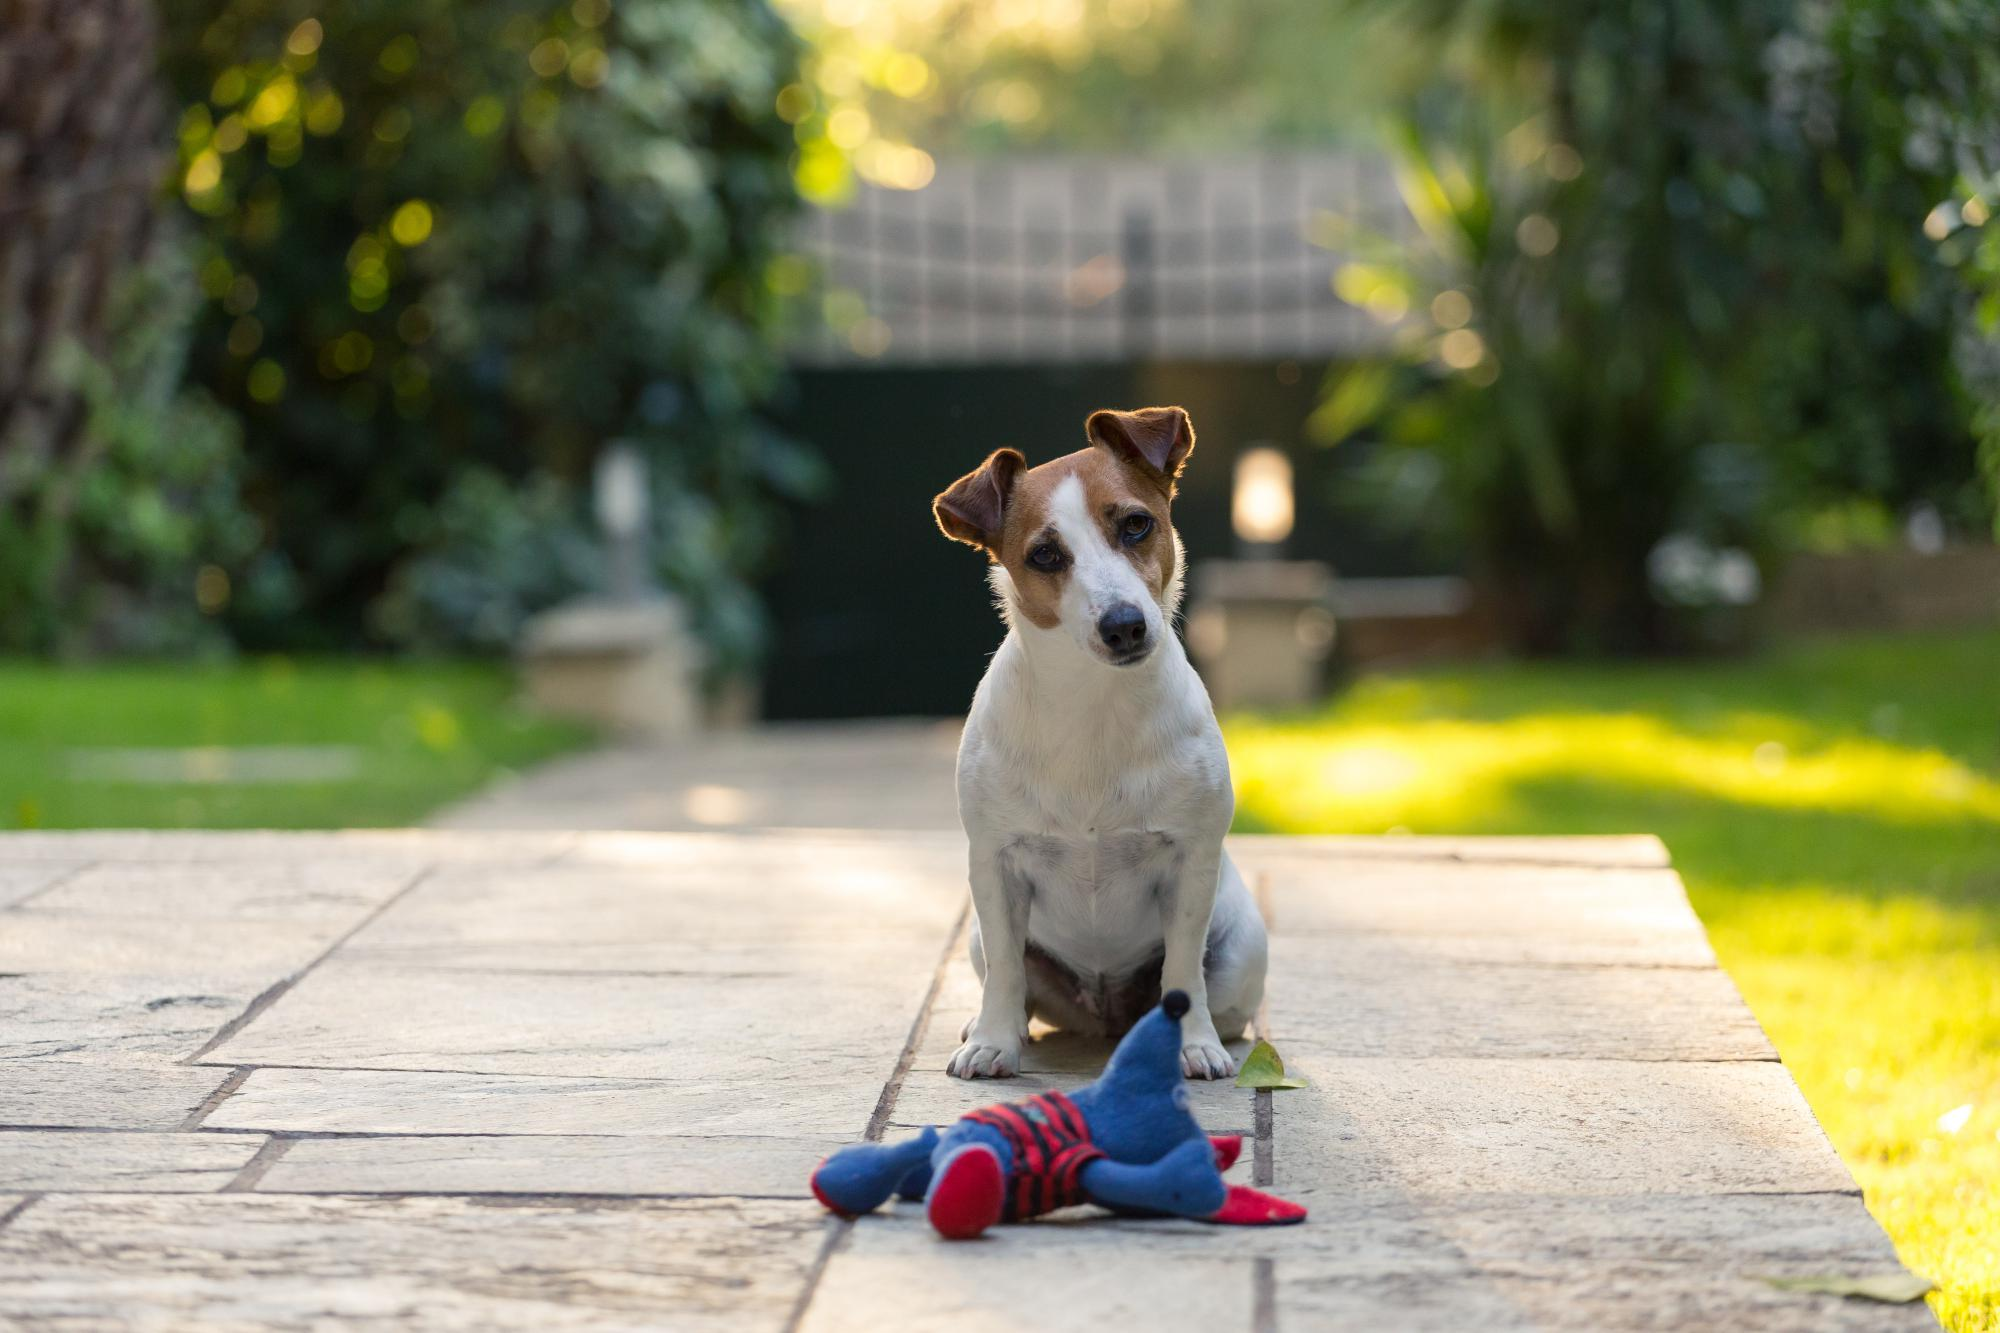 jack-russell-with-toy-PMRBK5K.jpg